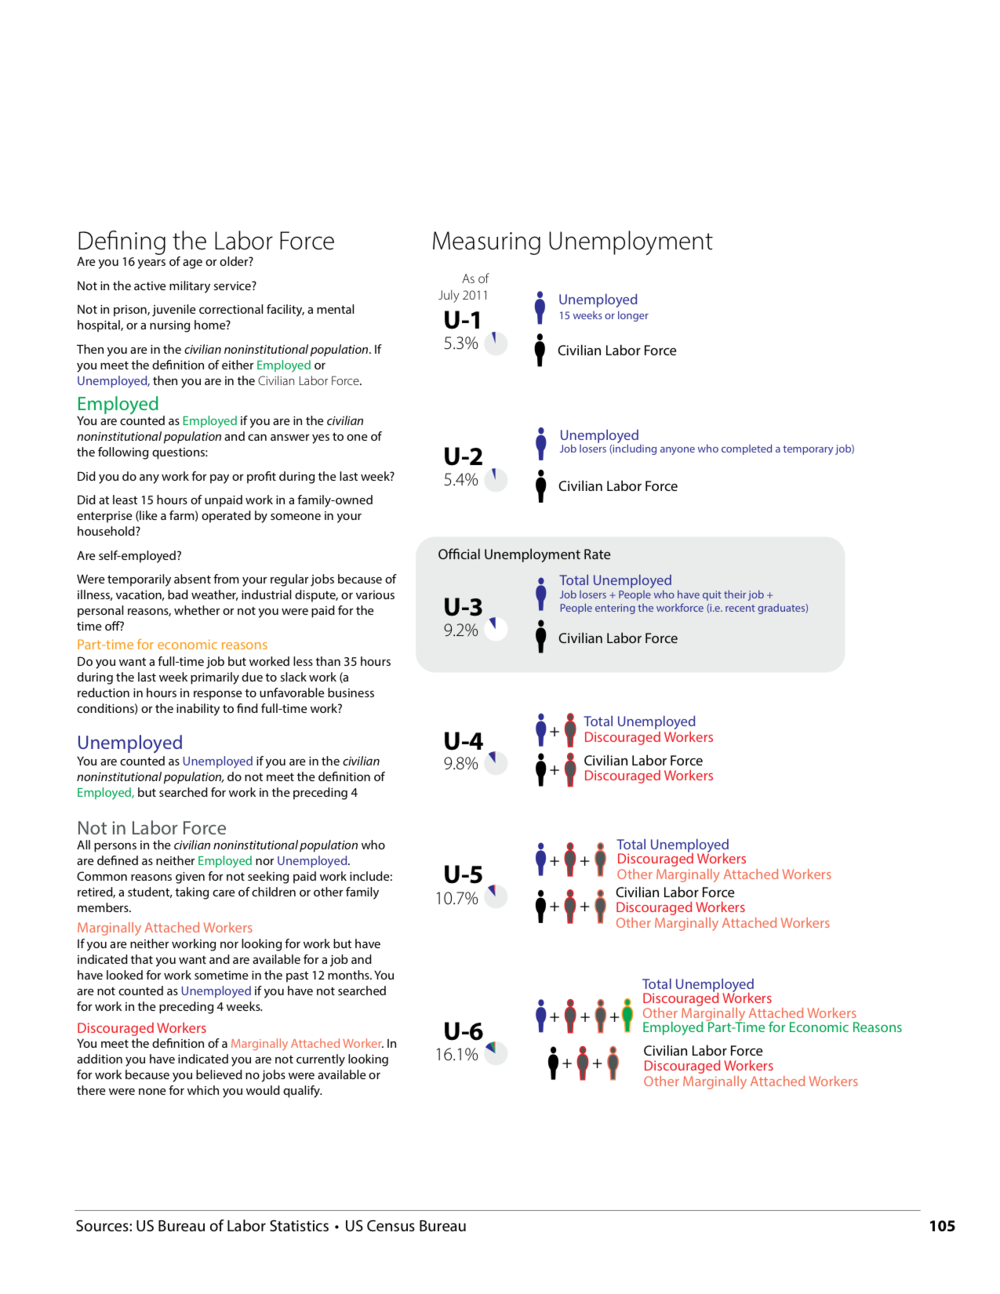 IncomeGuide_2013_Jan17_RGB_page 105_105.png